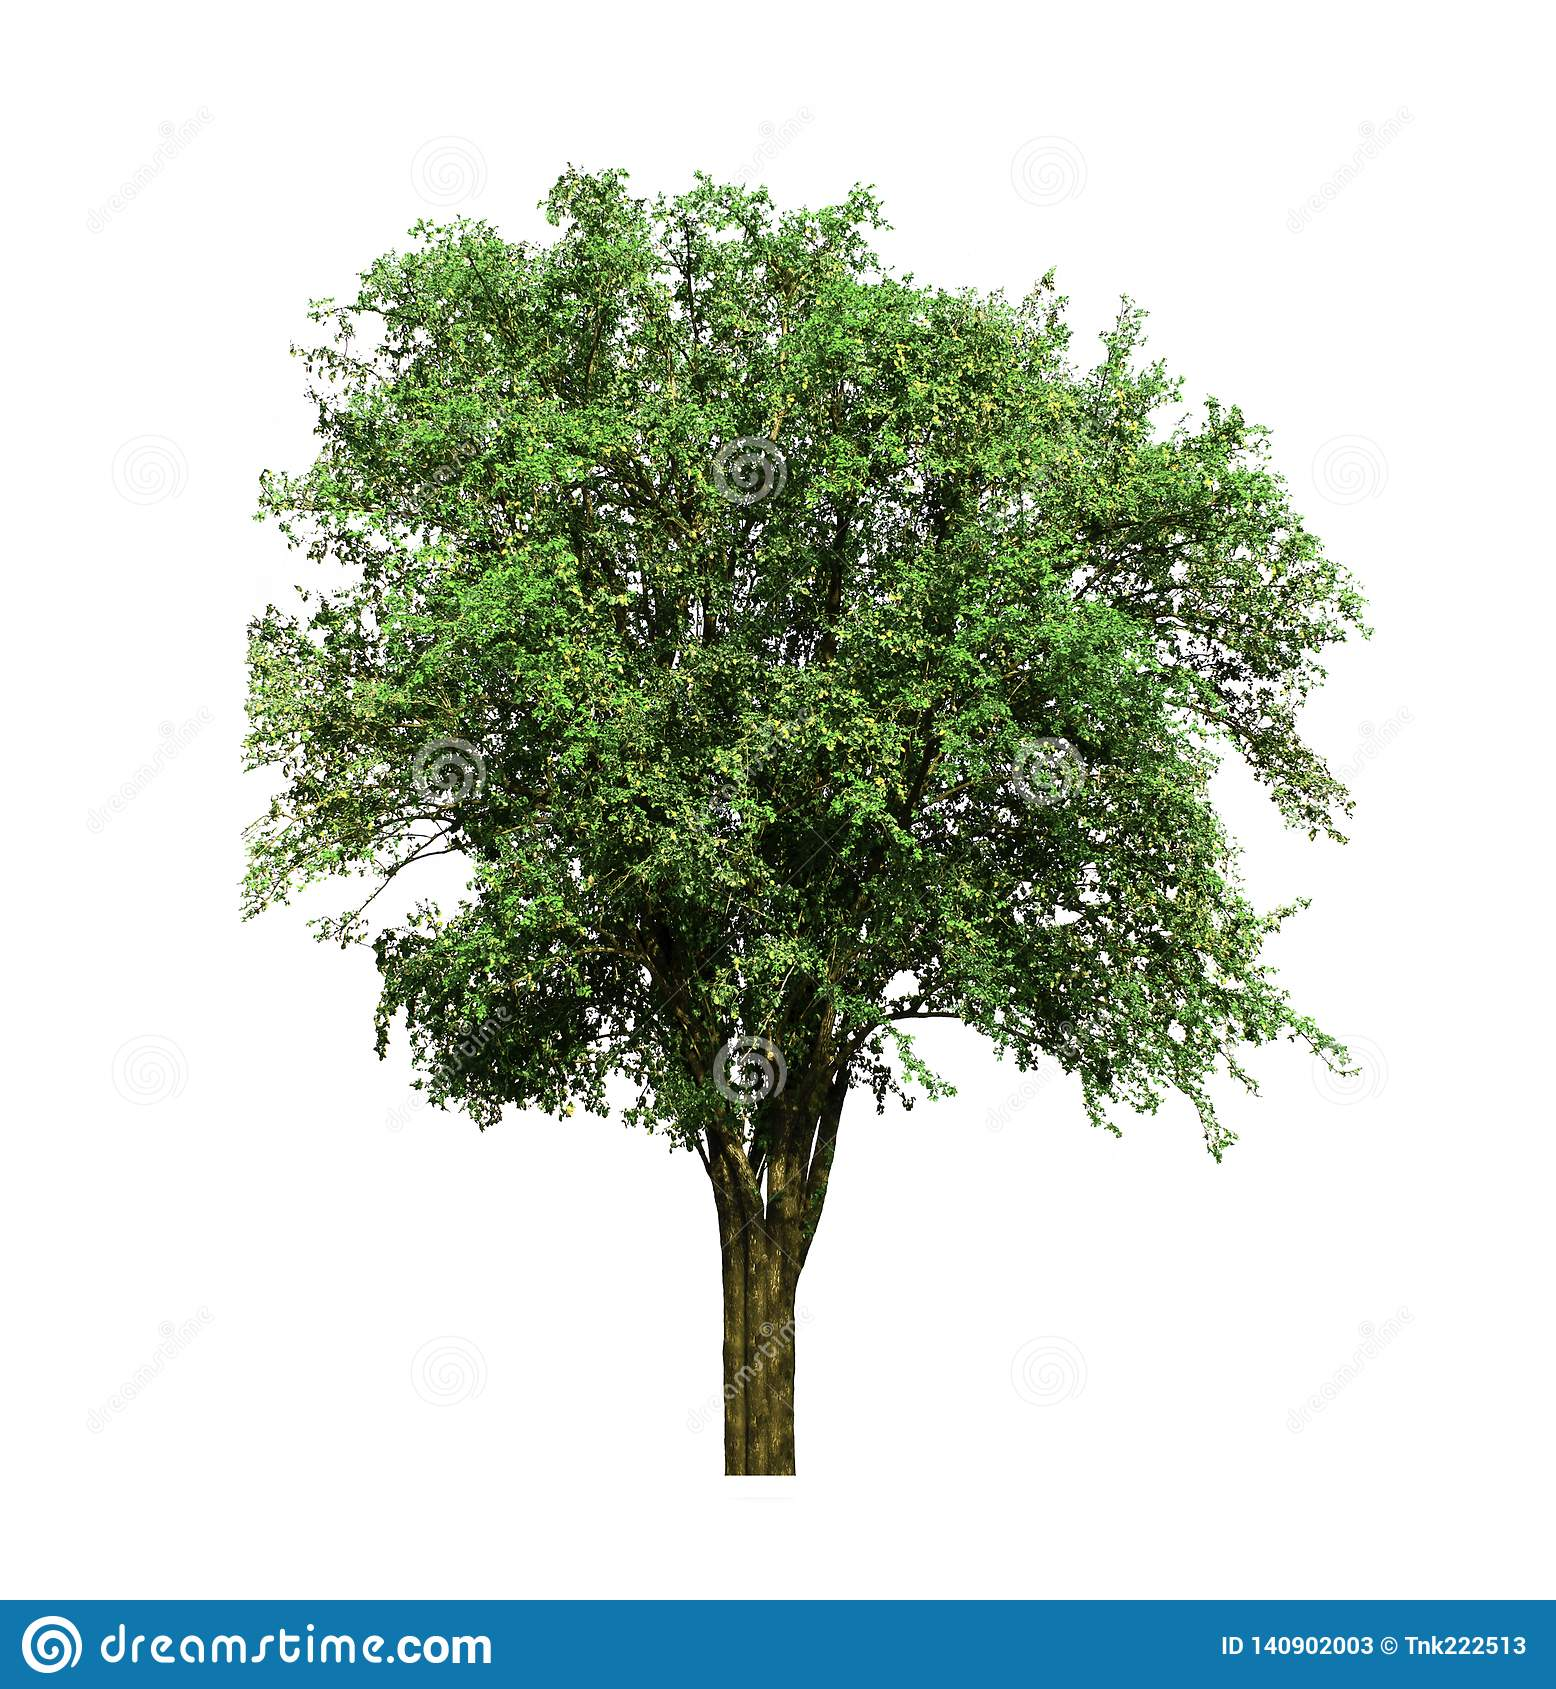 Indian jujube tree, tropical fruit growing up in the organic rice fields isolated on white background.